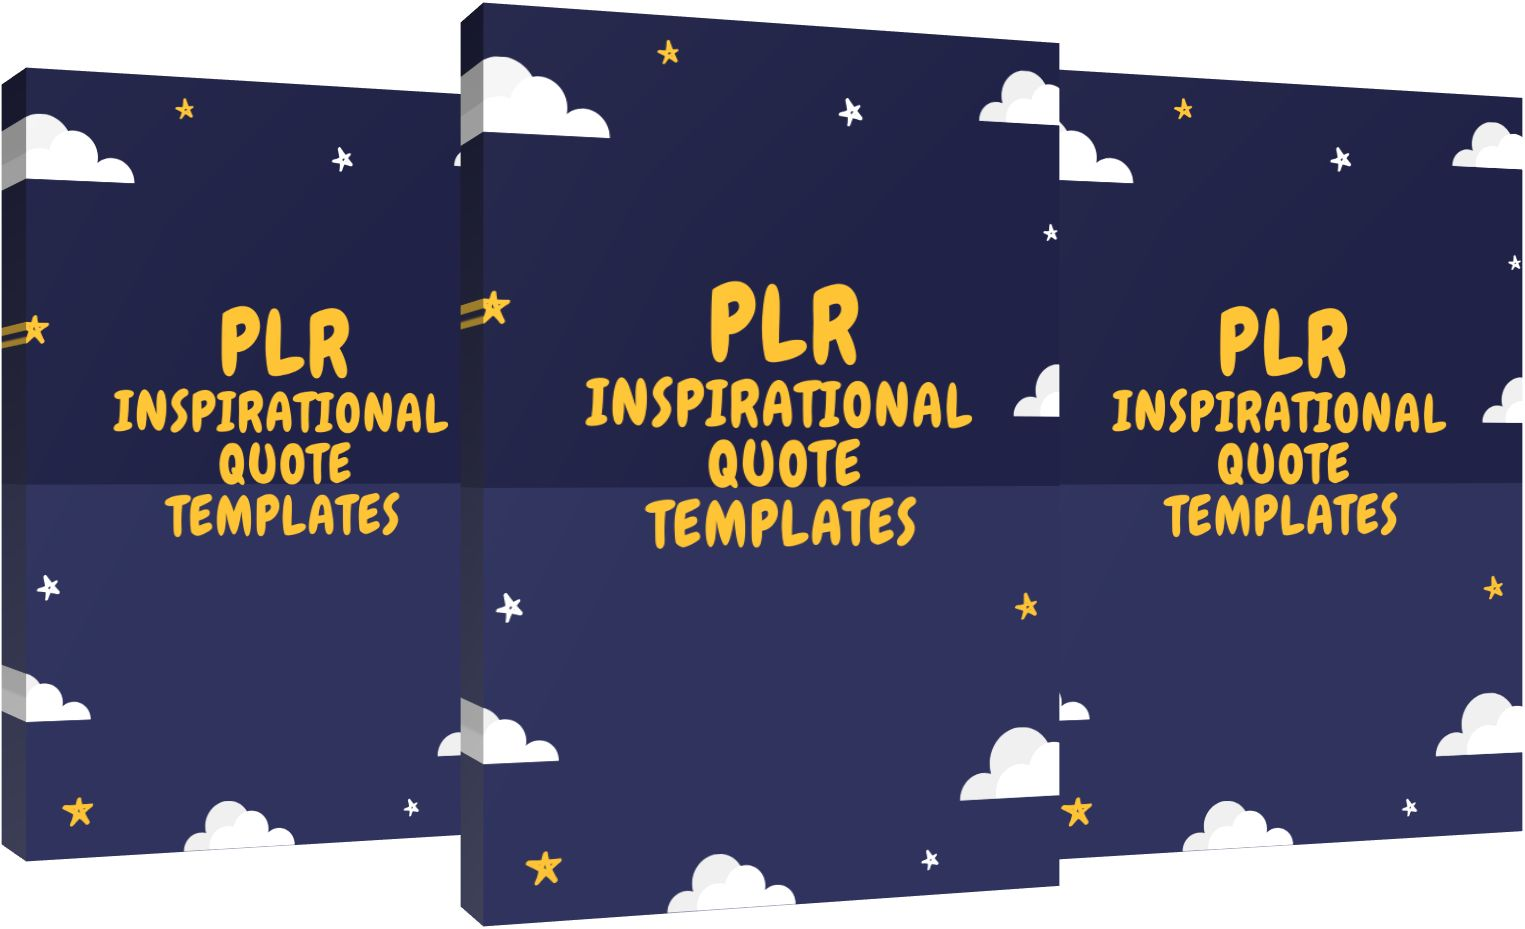 [PLR] Inspirational Quote Template Review